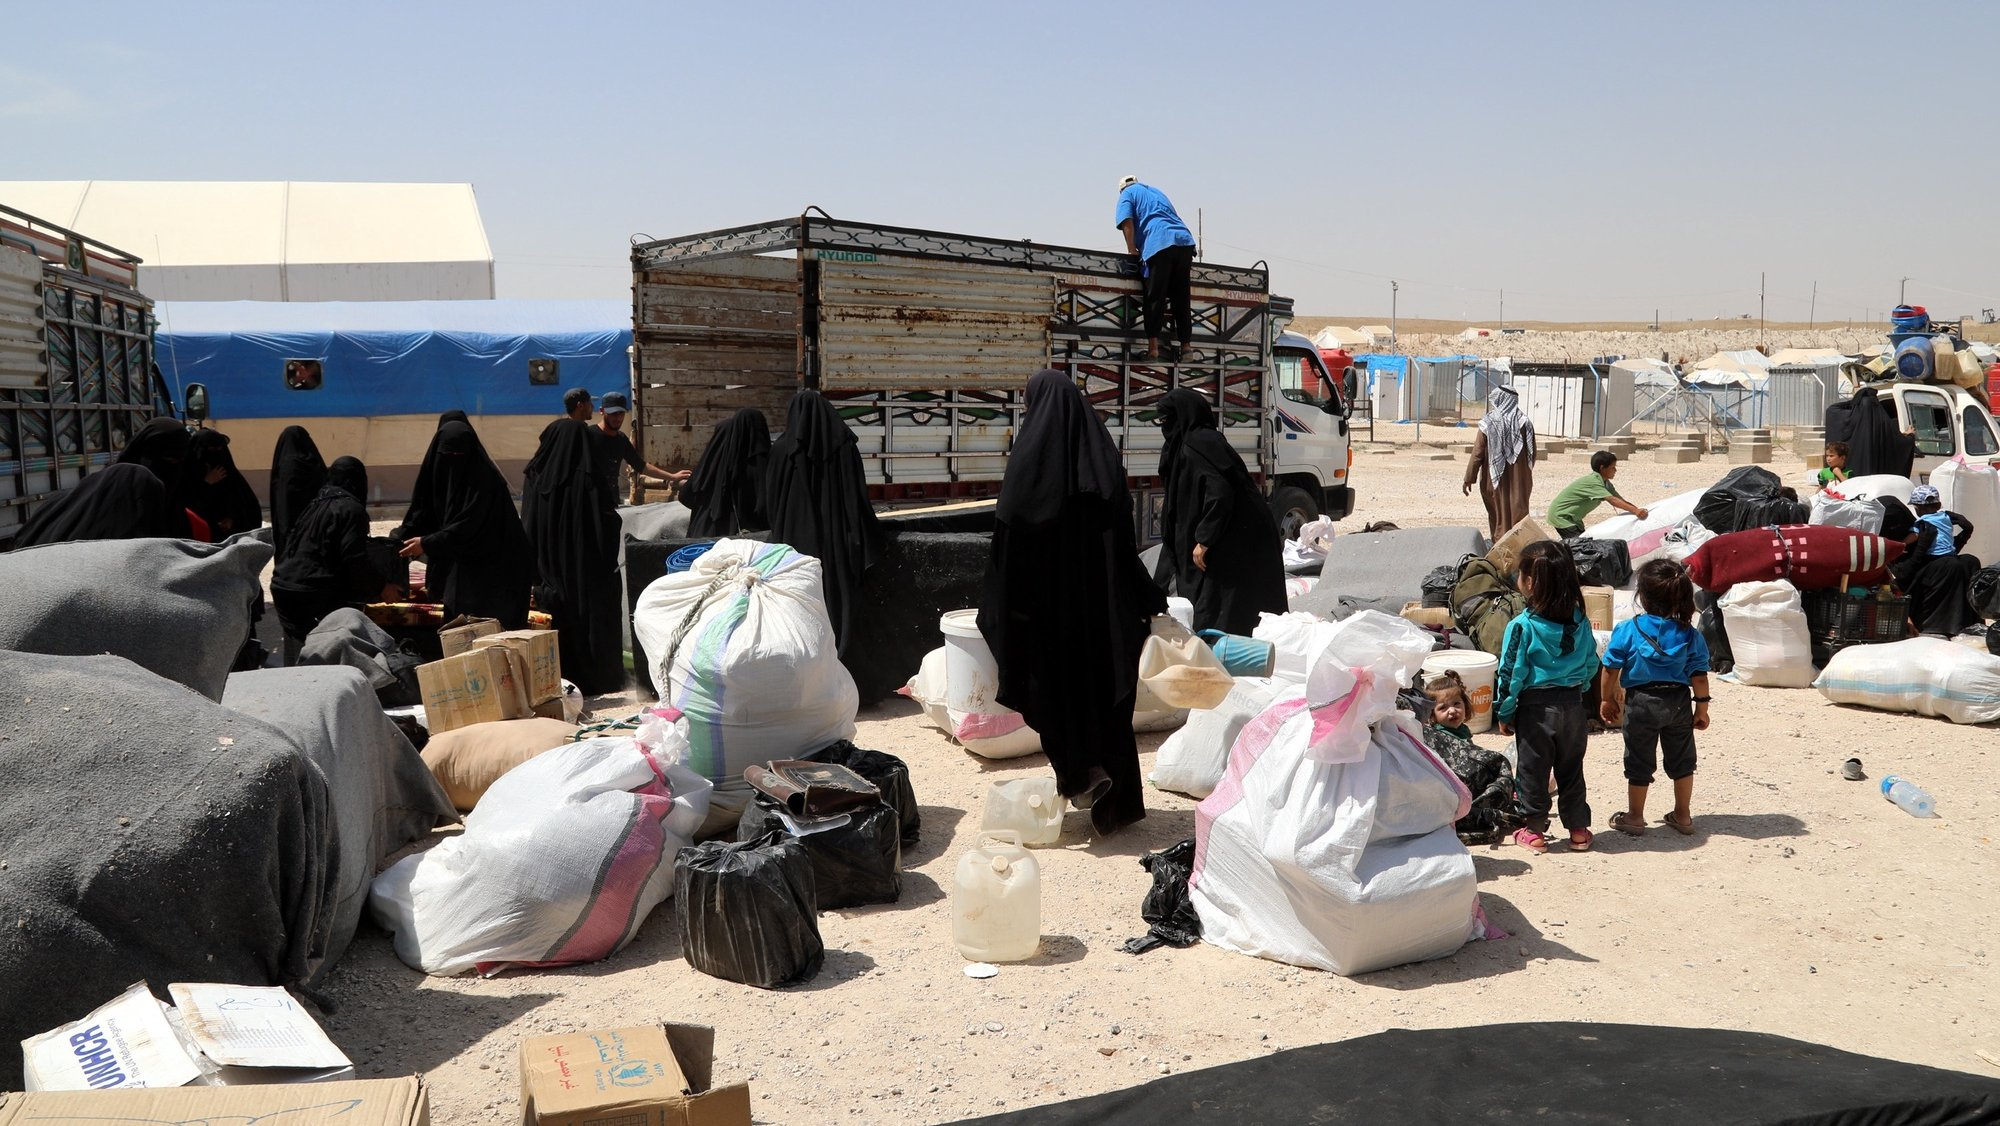 epa07623494 Wives of Islamic state fighters (IS) load their belongings into a truck upon their deportation from the al-Hol camp for refugees in al-Hasakah governorate in northeastern Syria on 03 June 2019 (issued 04 June 2019).  According to media reports, the Kurdish authorities in northeast Syria are handing over 800 women and children all of them Syrian, including relatives of Islamic state fighters, to their families in the first such transfer from an overcrowded camp.  EPA/AHMED MARDNLI